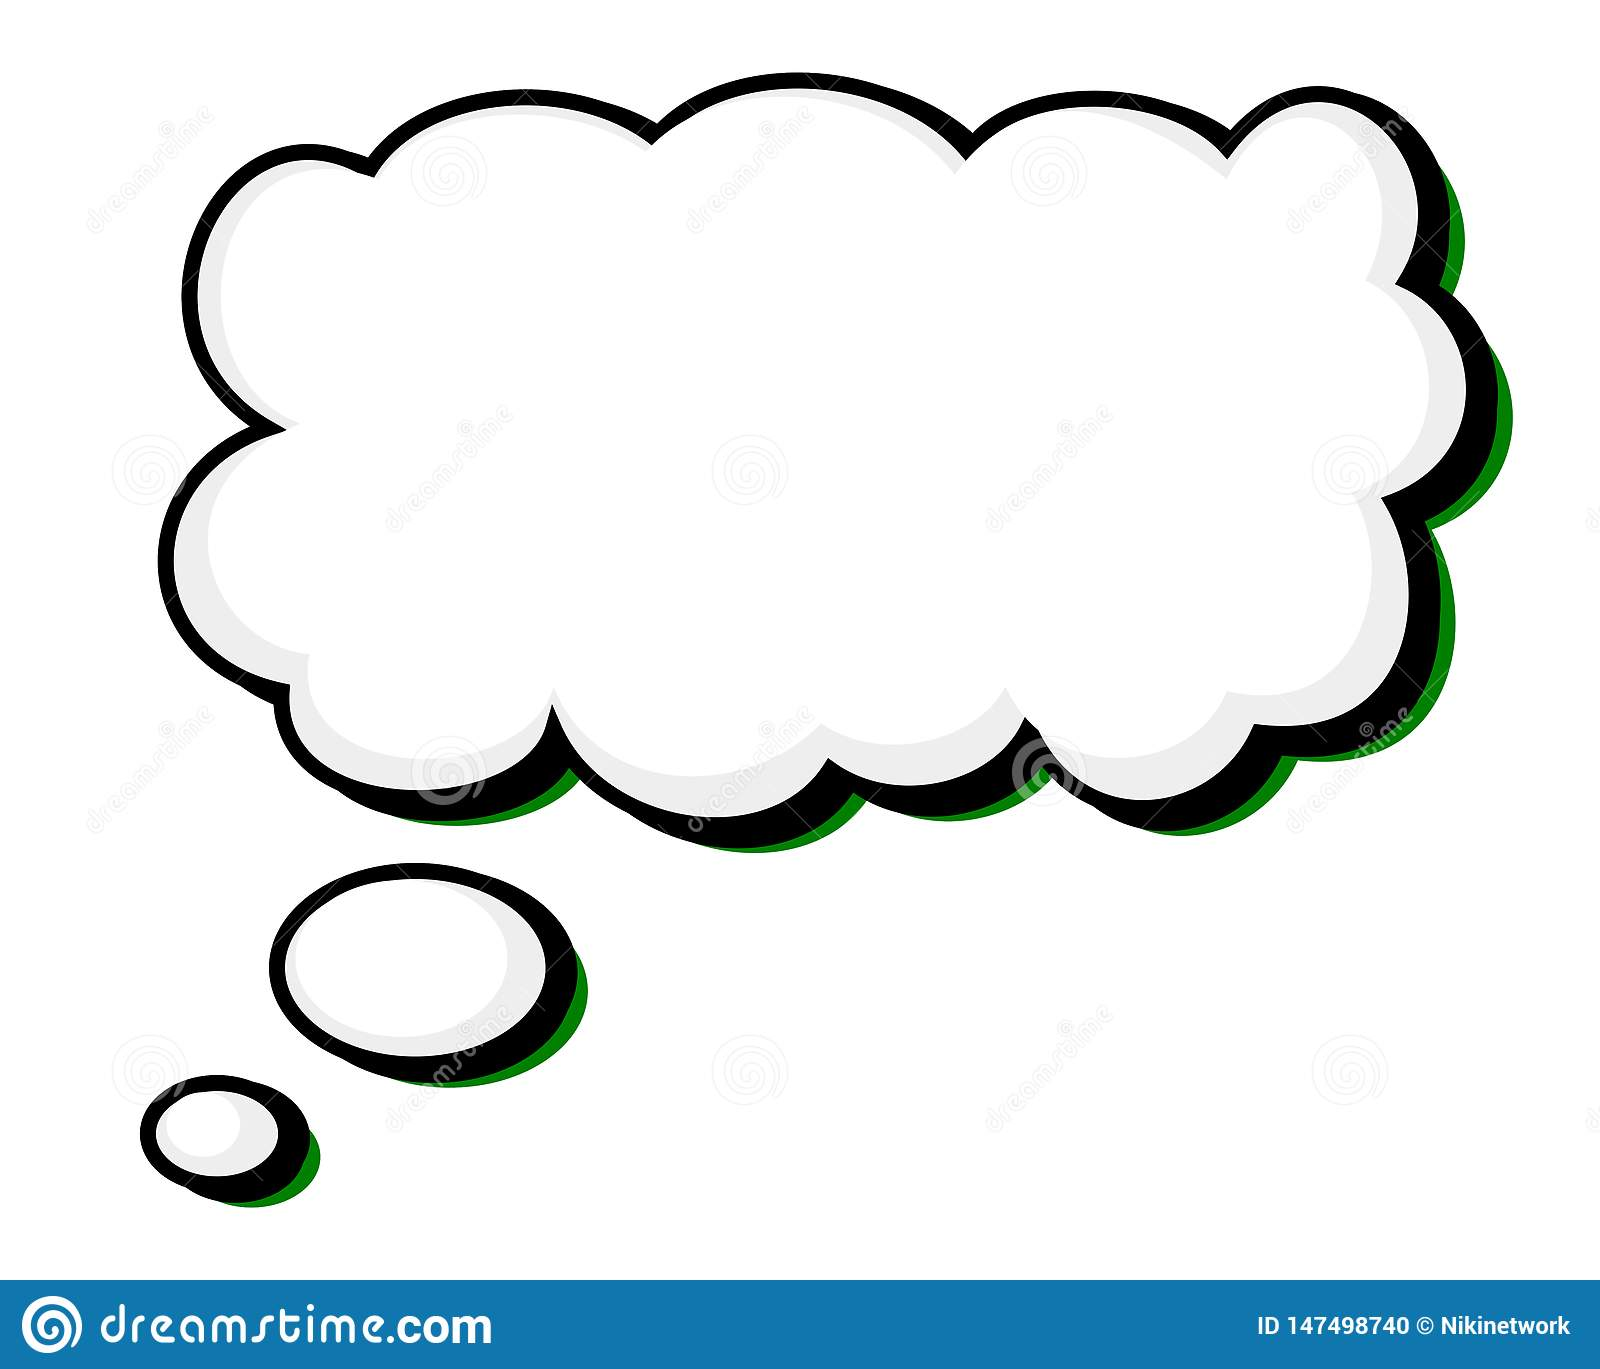 Word Balloon with Solid Black Outline Green Highlight